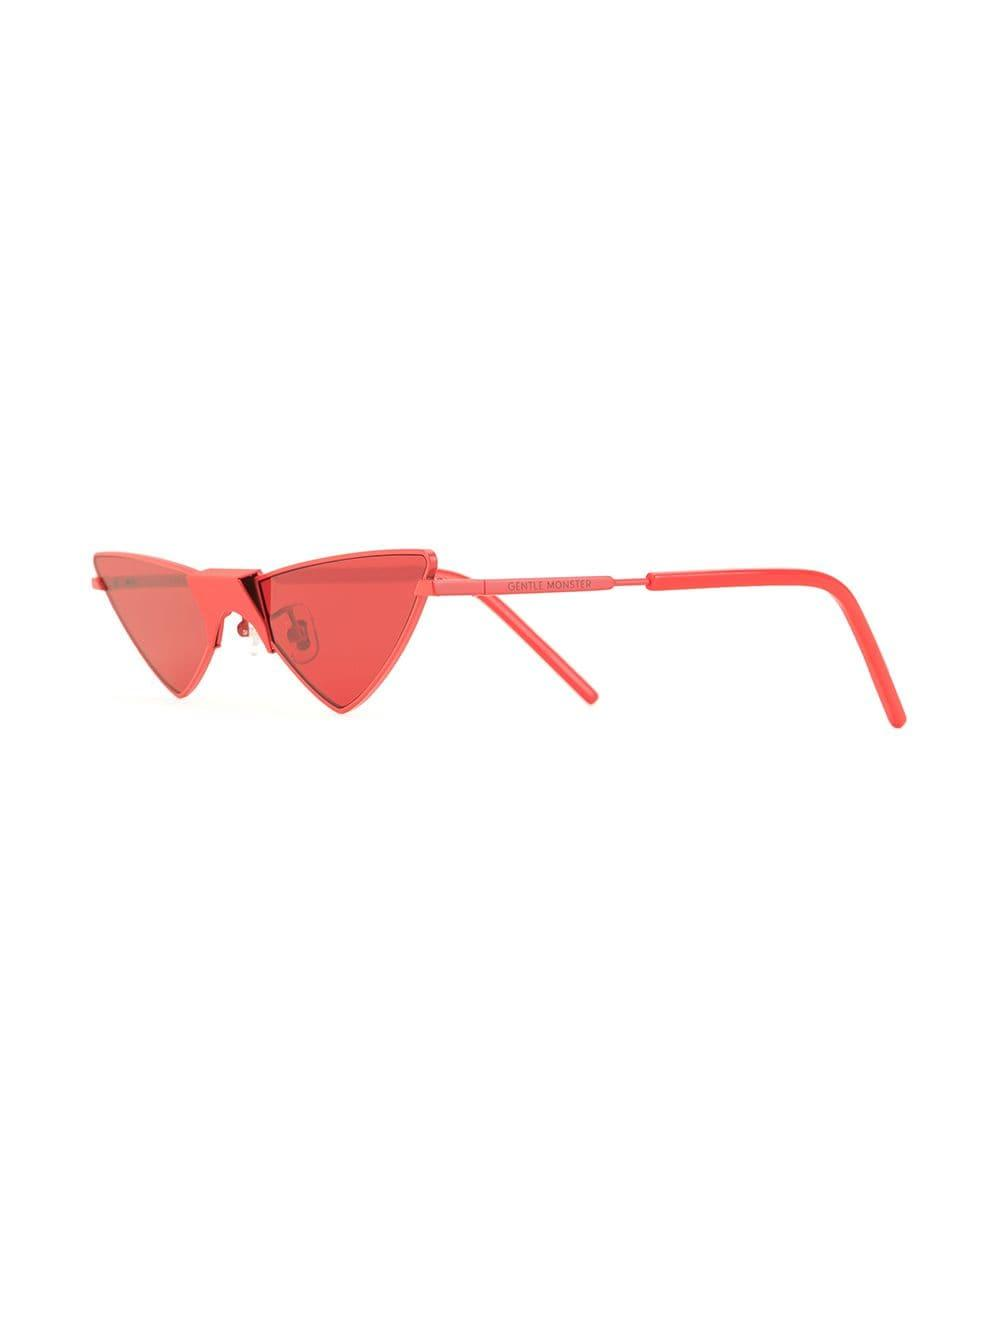 a5f1397176ba Gentle Monster Ribbon Sunglasses in Red - Lyst